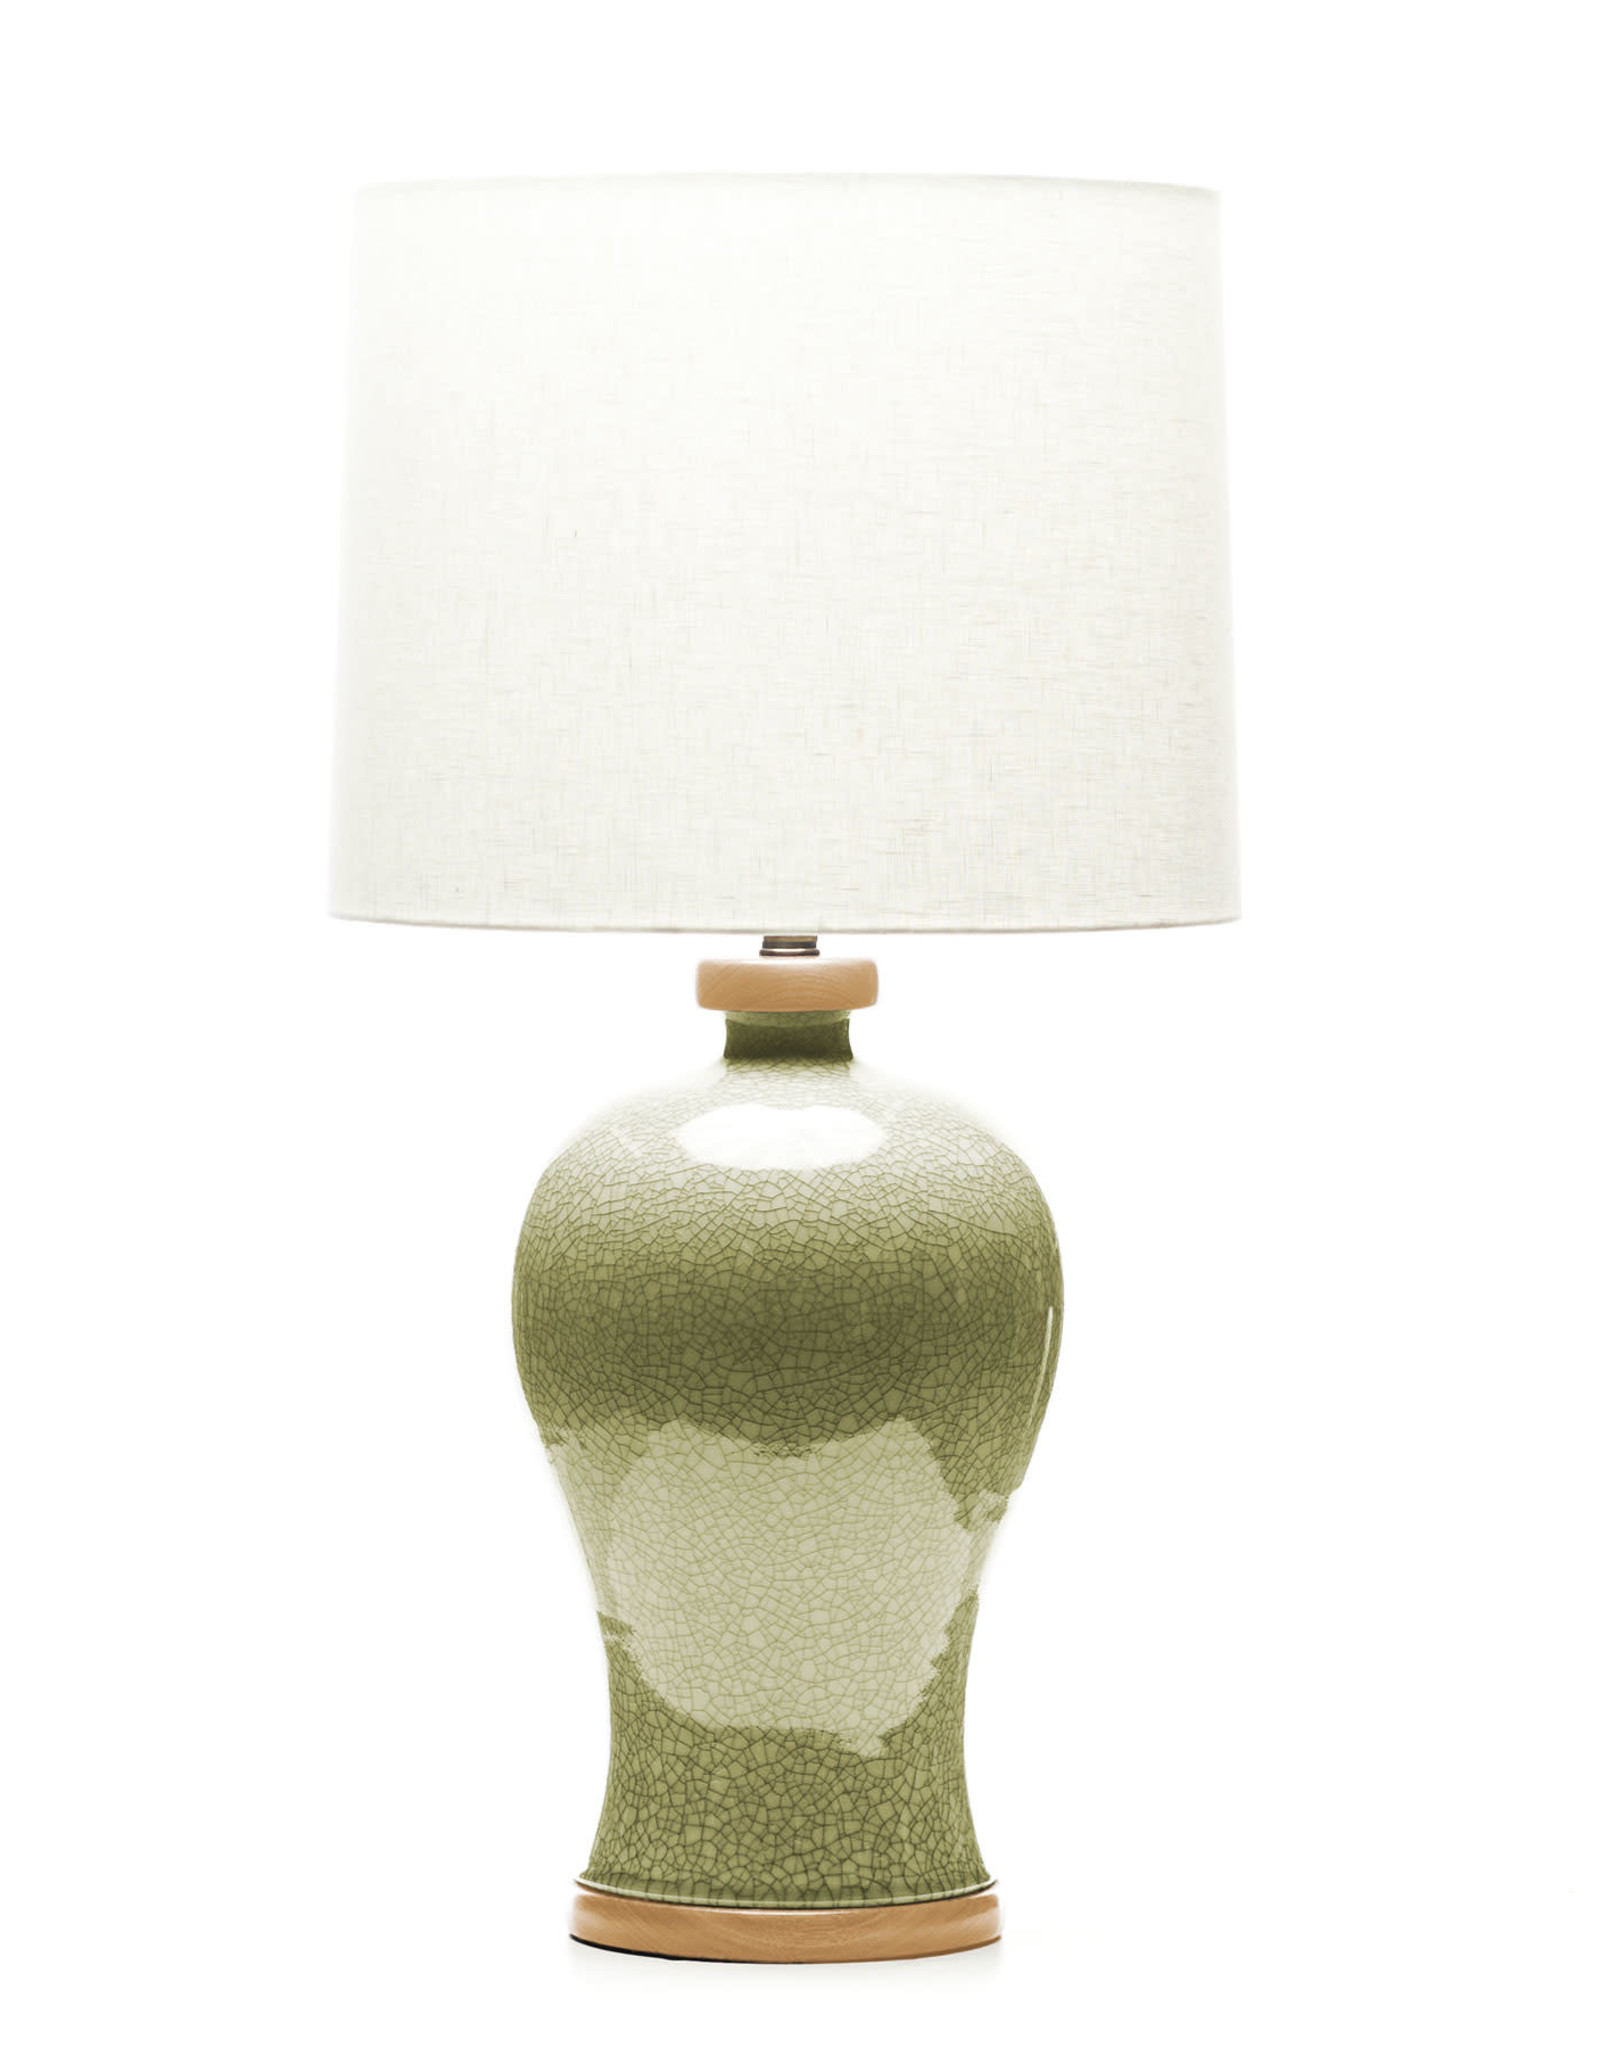 Lawrence & Scott Dashiell Table Lamp in Oyster Crackle (Oak)